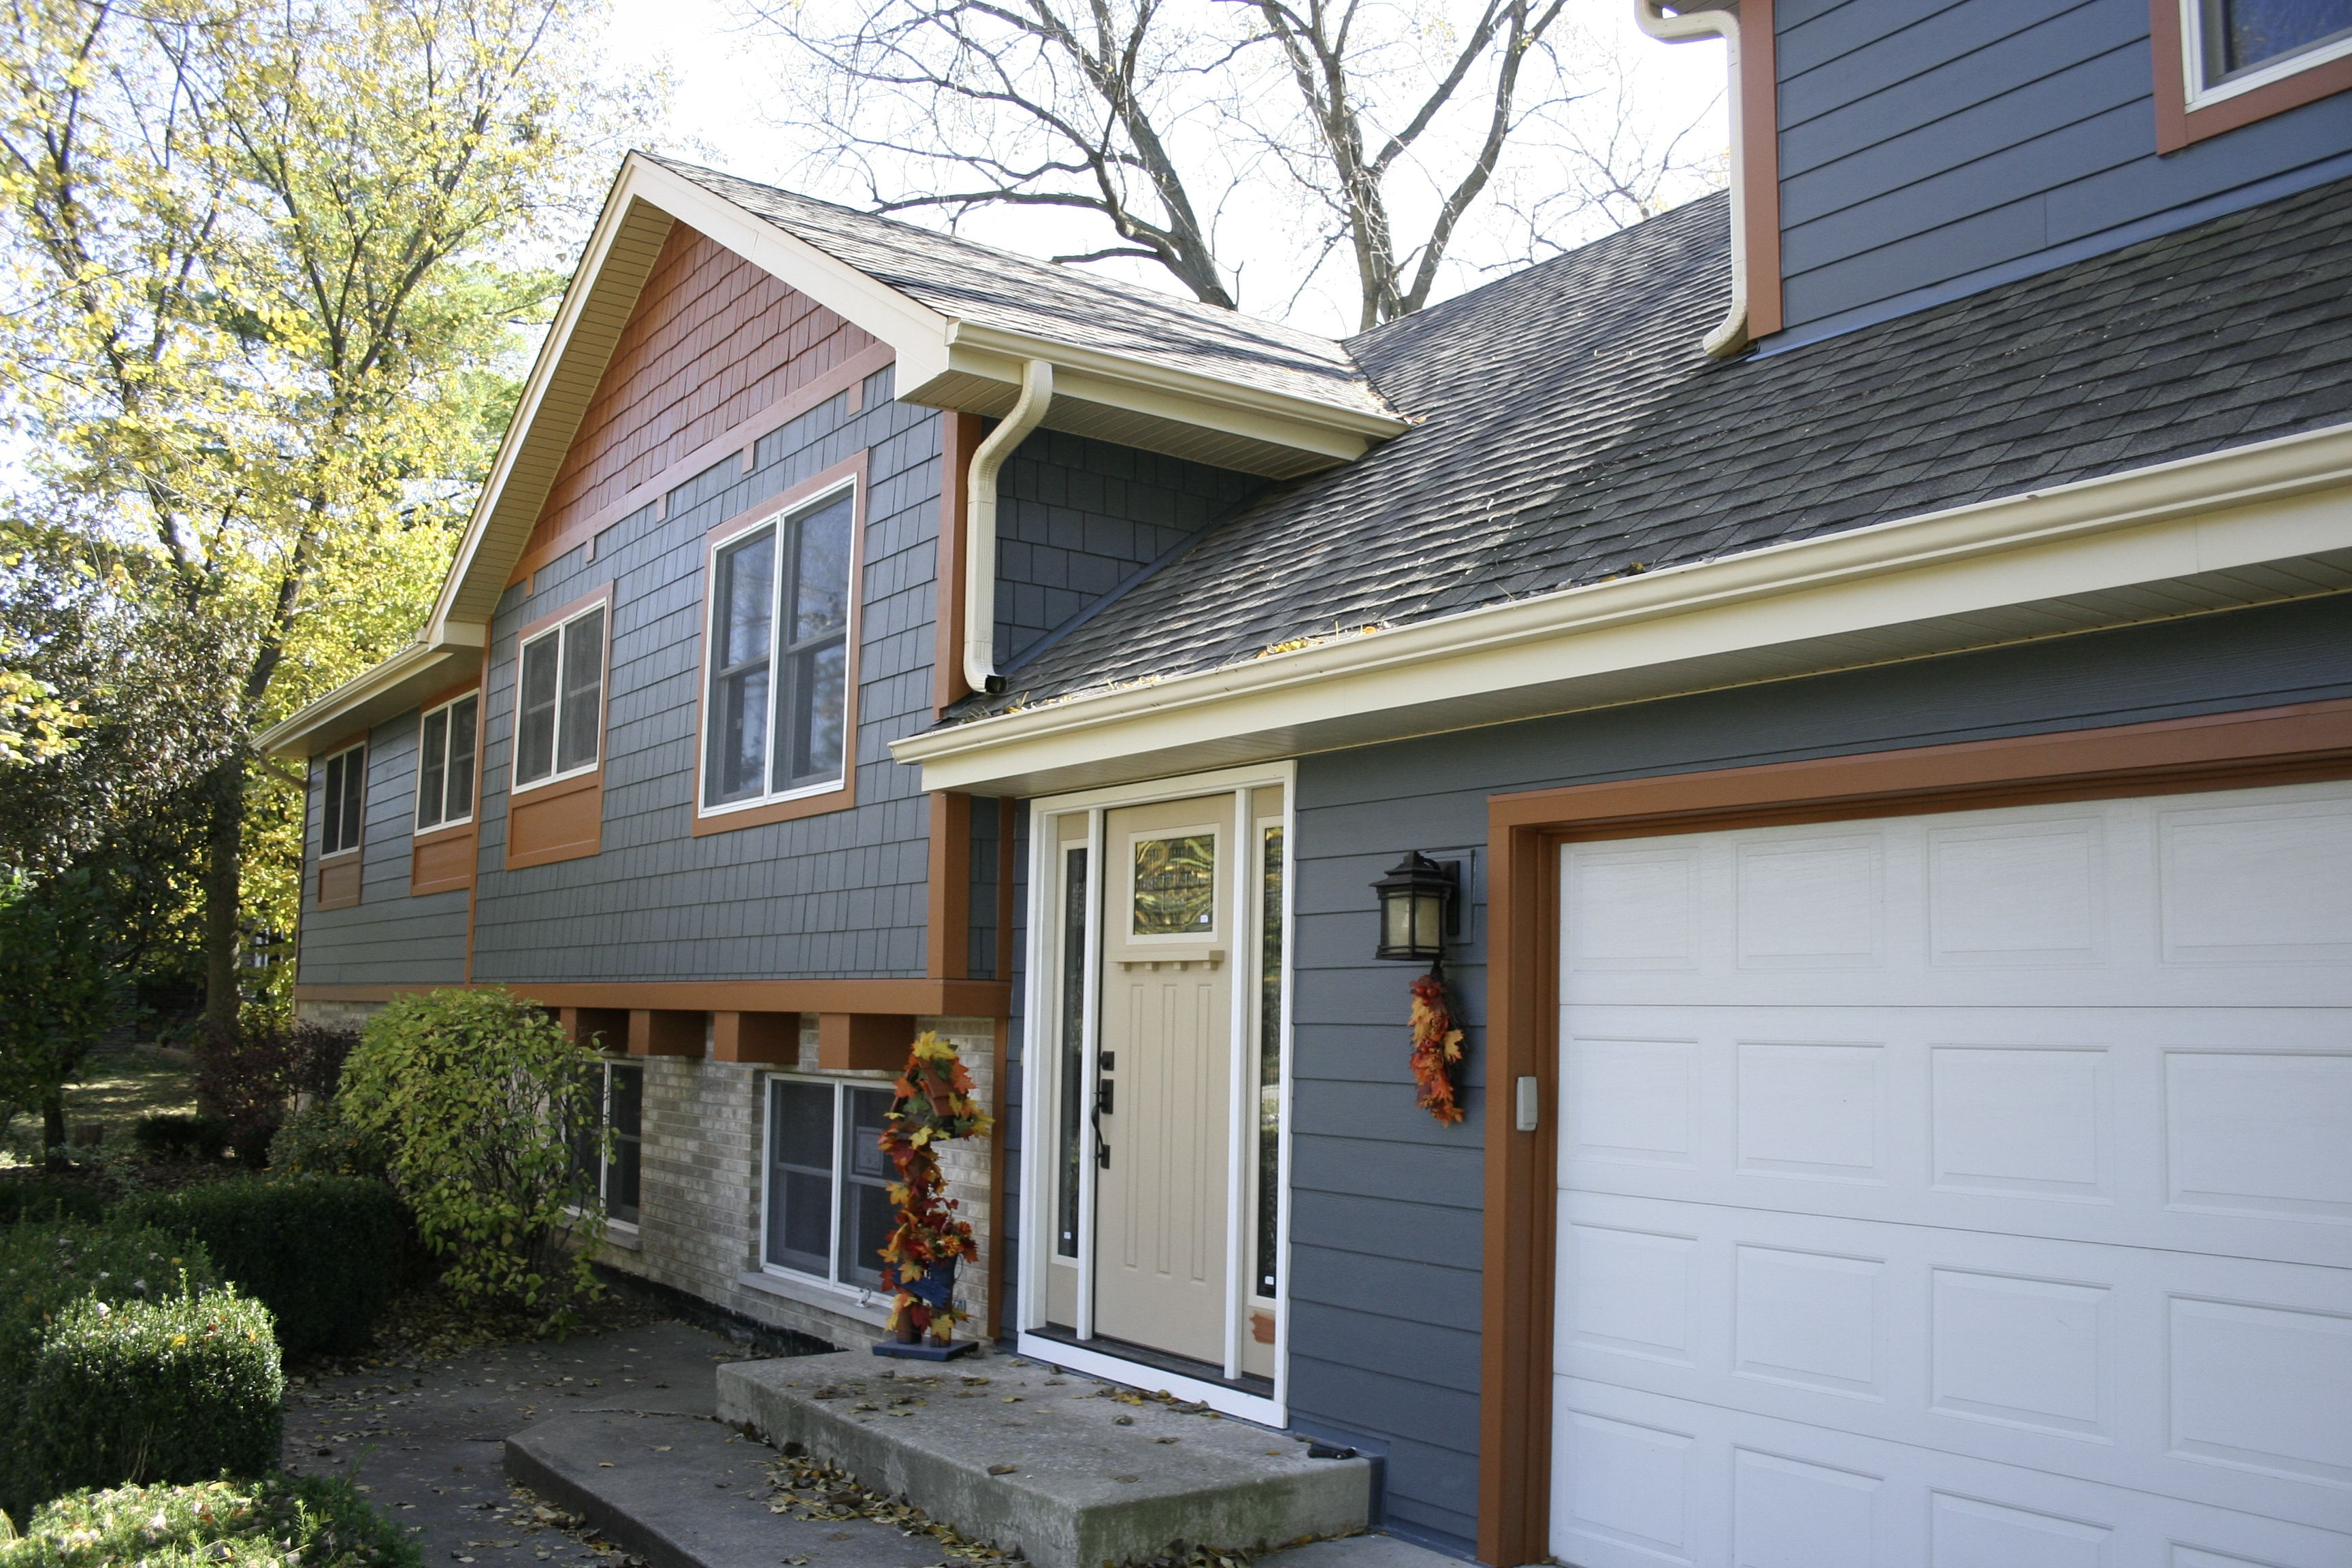 Opal Siding Roofing Doors Windows In Naperville Il House Exterior Hardie Siding Siding